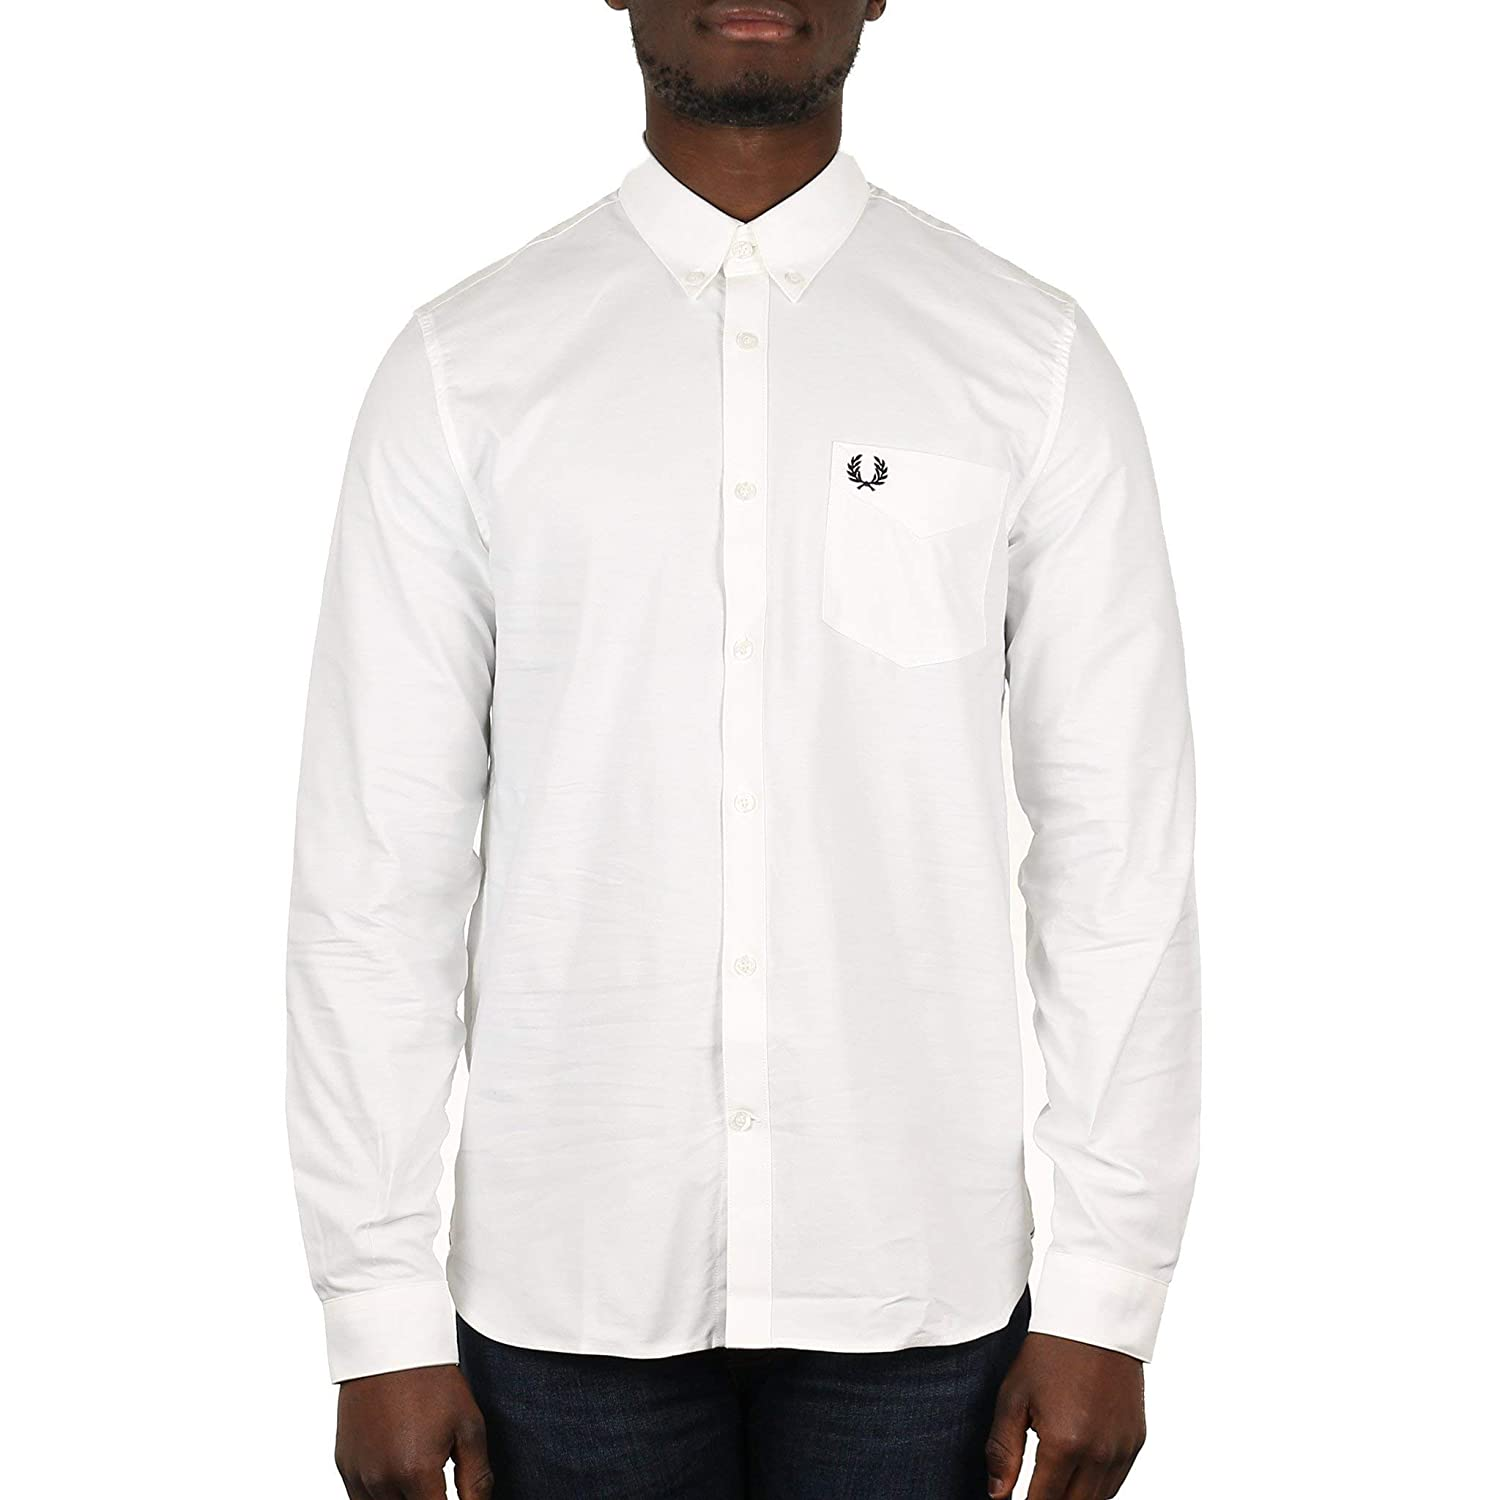 TALLA S. Fred Perry Hombres Camisa Oxford Classic Blanco